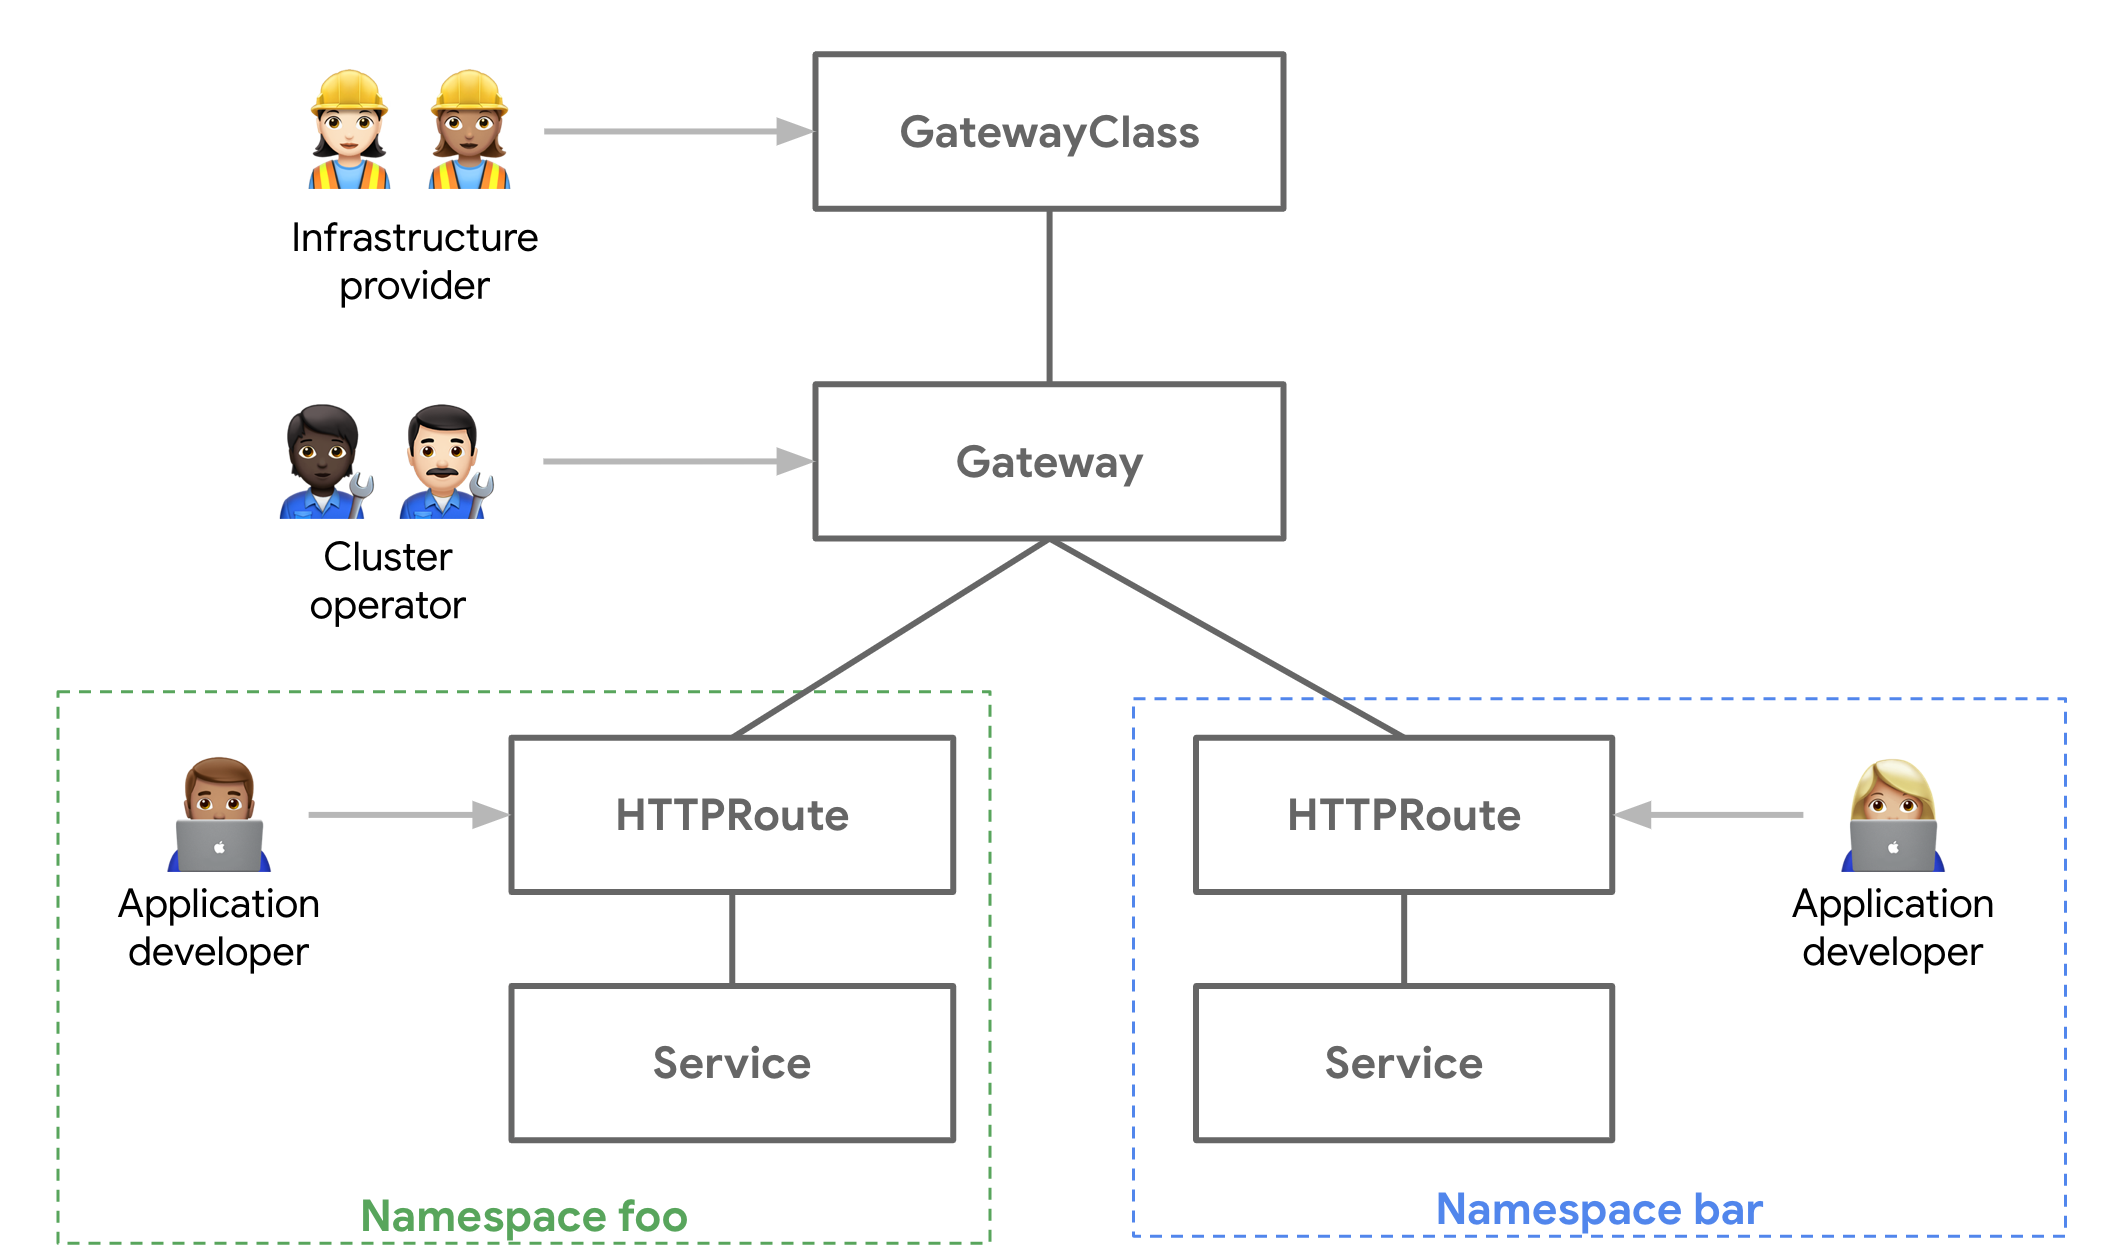 The resources of the Gateway API